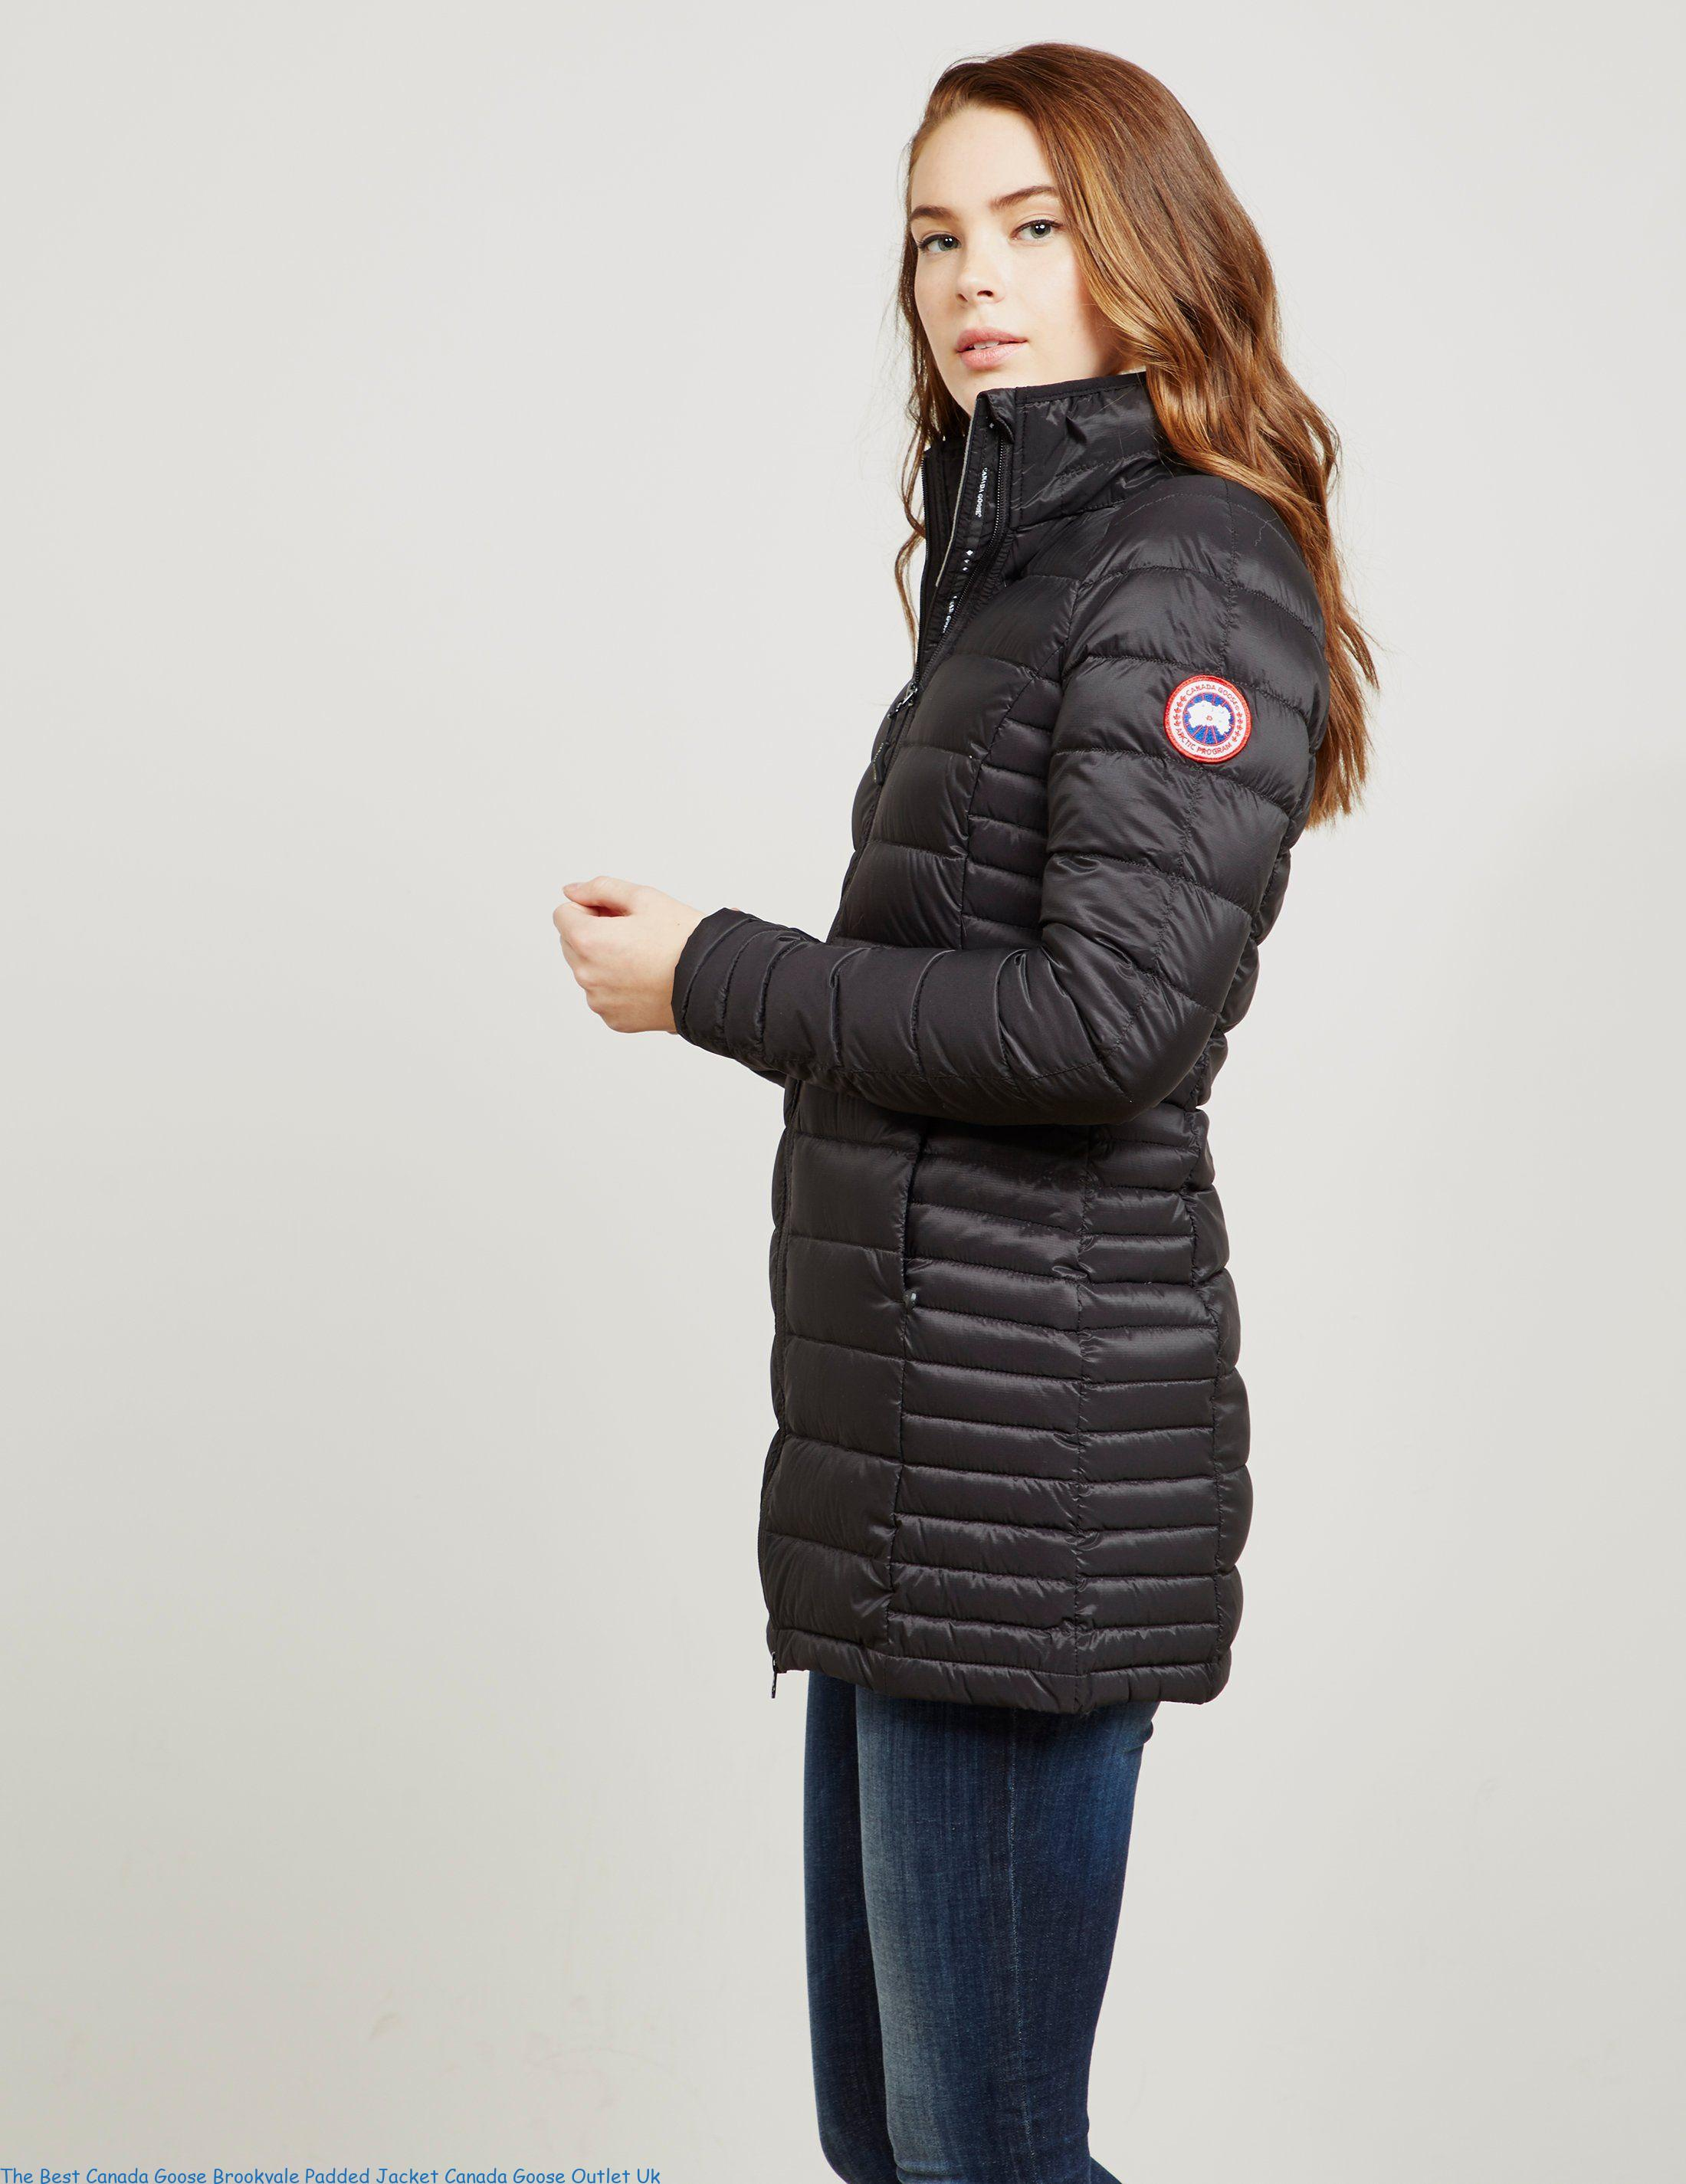 7e07e531f1a The Best Canada Goose Brookvale Padded Jacket Canada Goose Outlet Uk